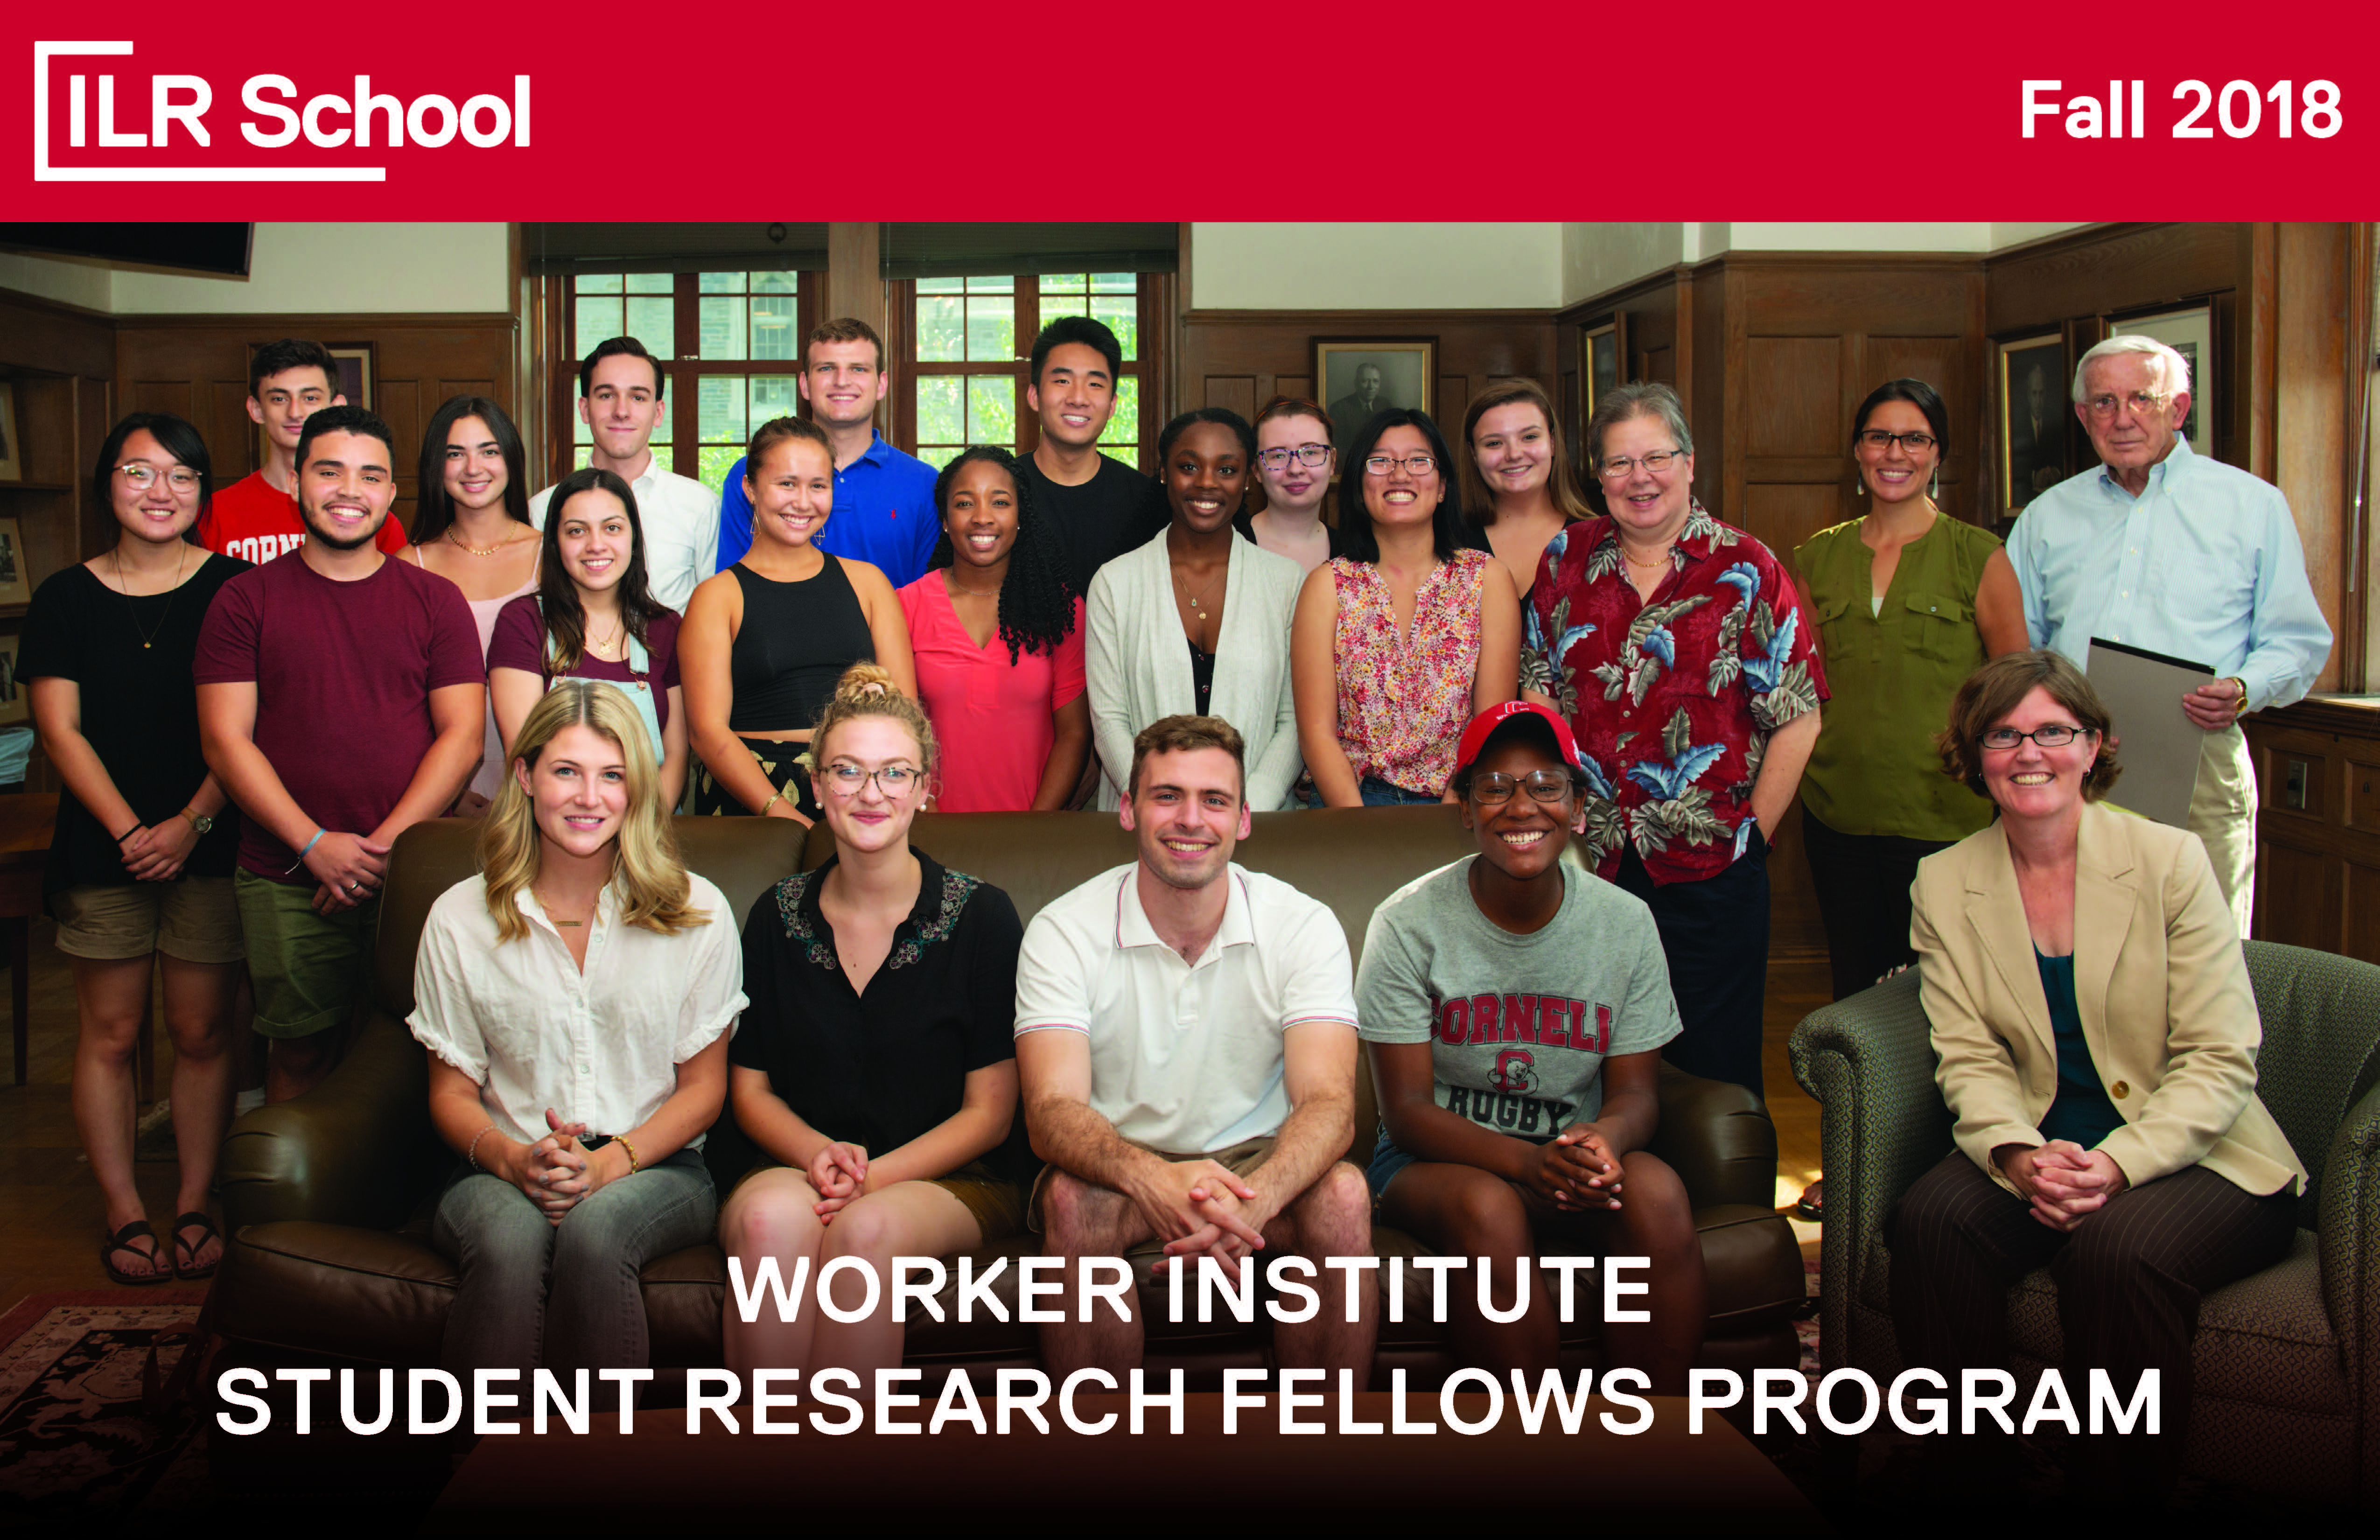 WORKER INSTITUTE STUDENT RESEARCH FELLOWS PROGRAM